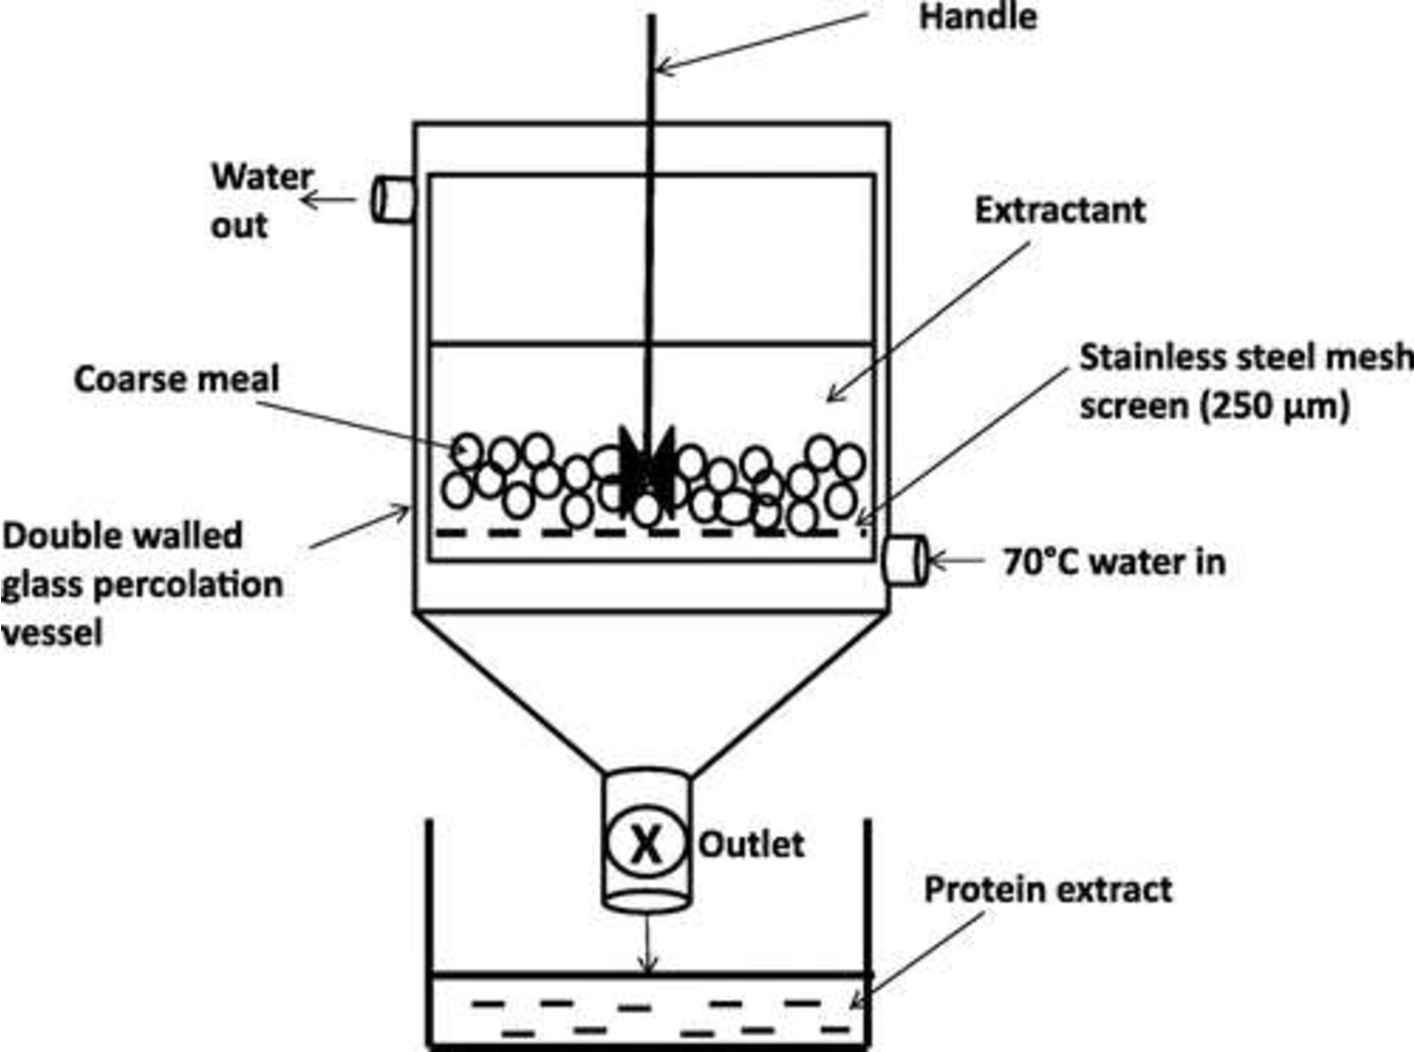 Pdf Extraction And Film Properties Of Kafirin From Coarse Sorghum And Sorghum Ddgs By Percolation Semantic Scholar